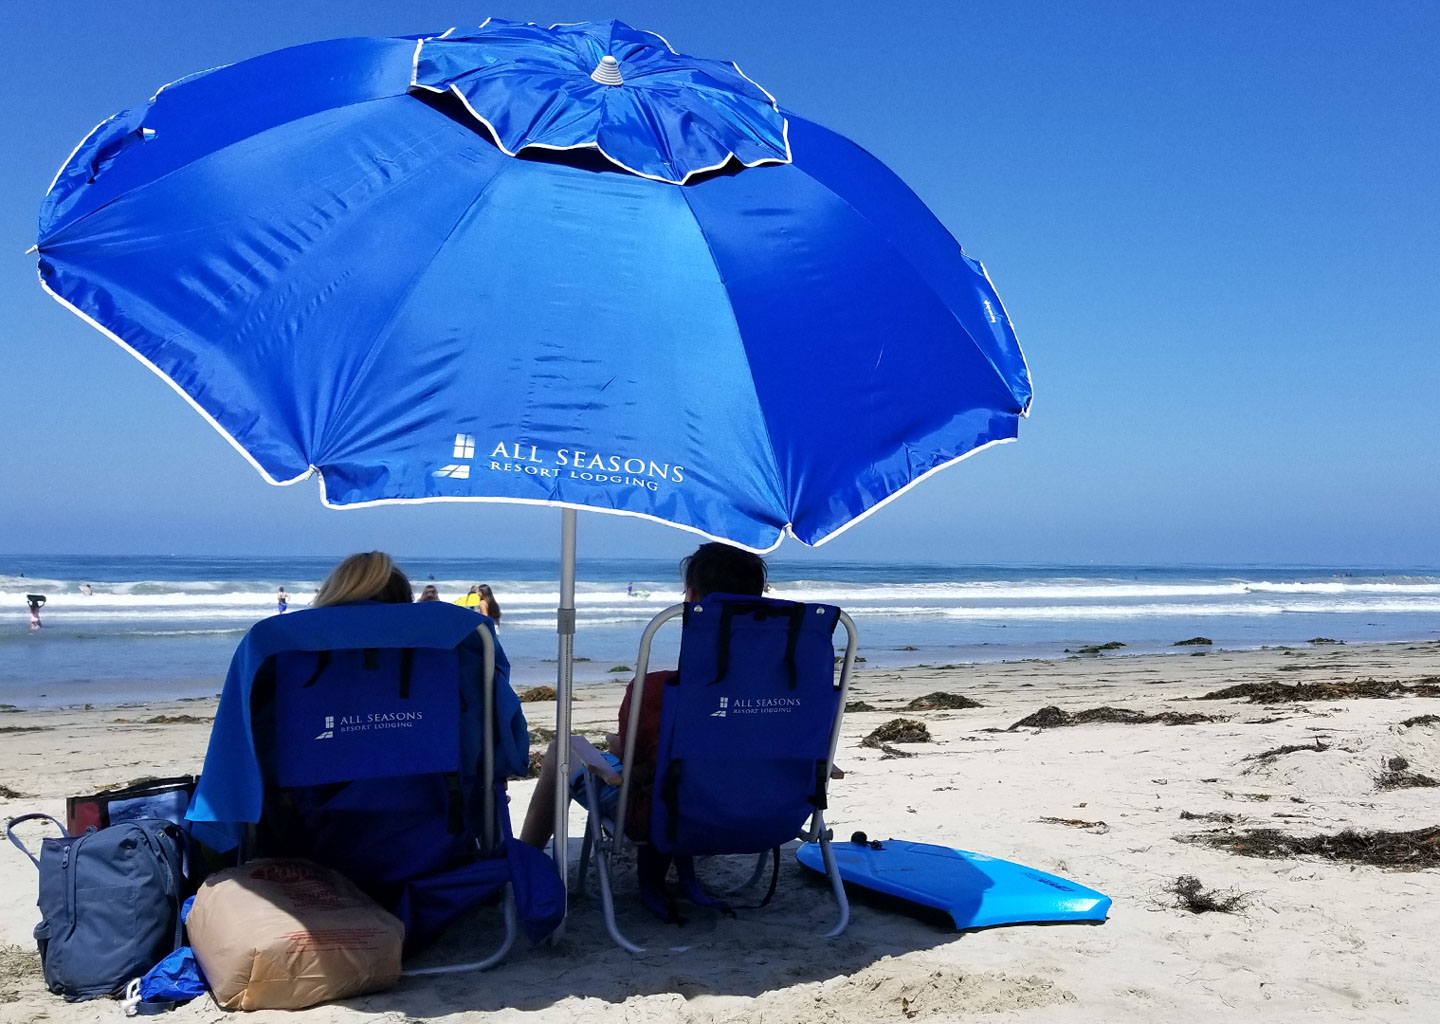 Two Beach Bathers Resting Under a Blue All Seasons Resort Lodging Umbrella on a Sunny Day